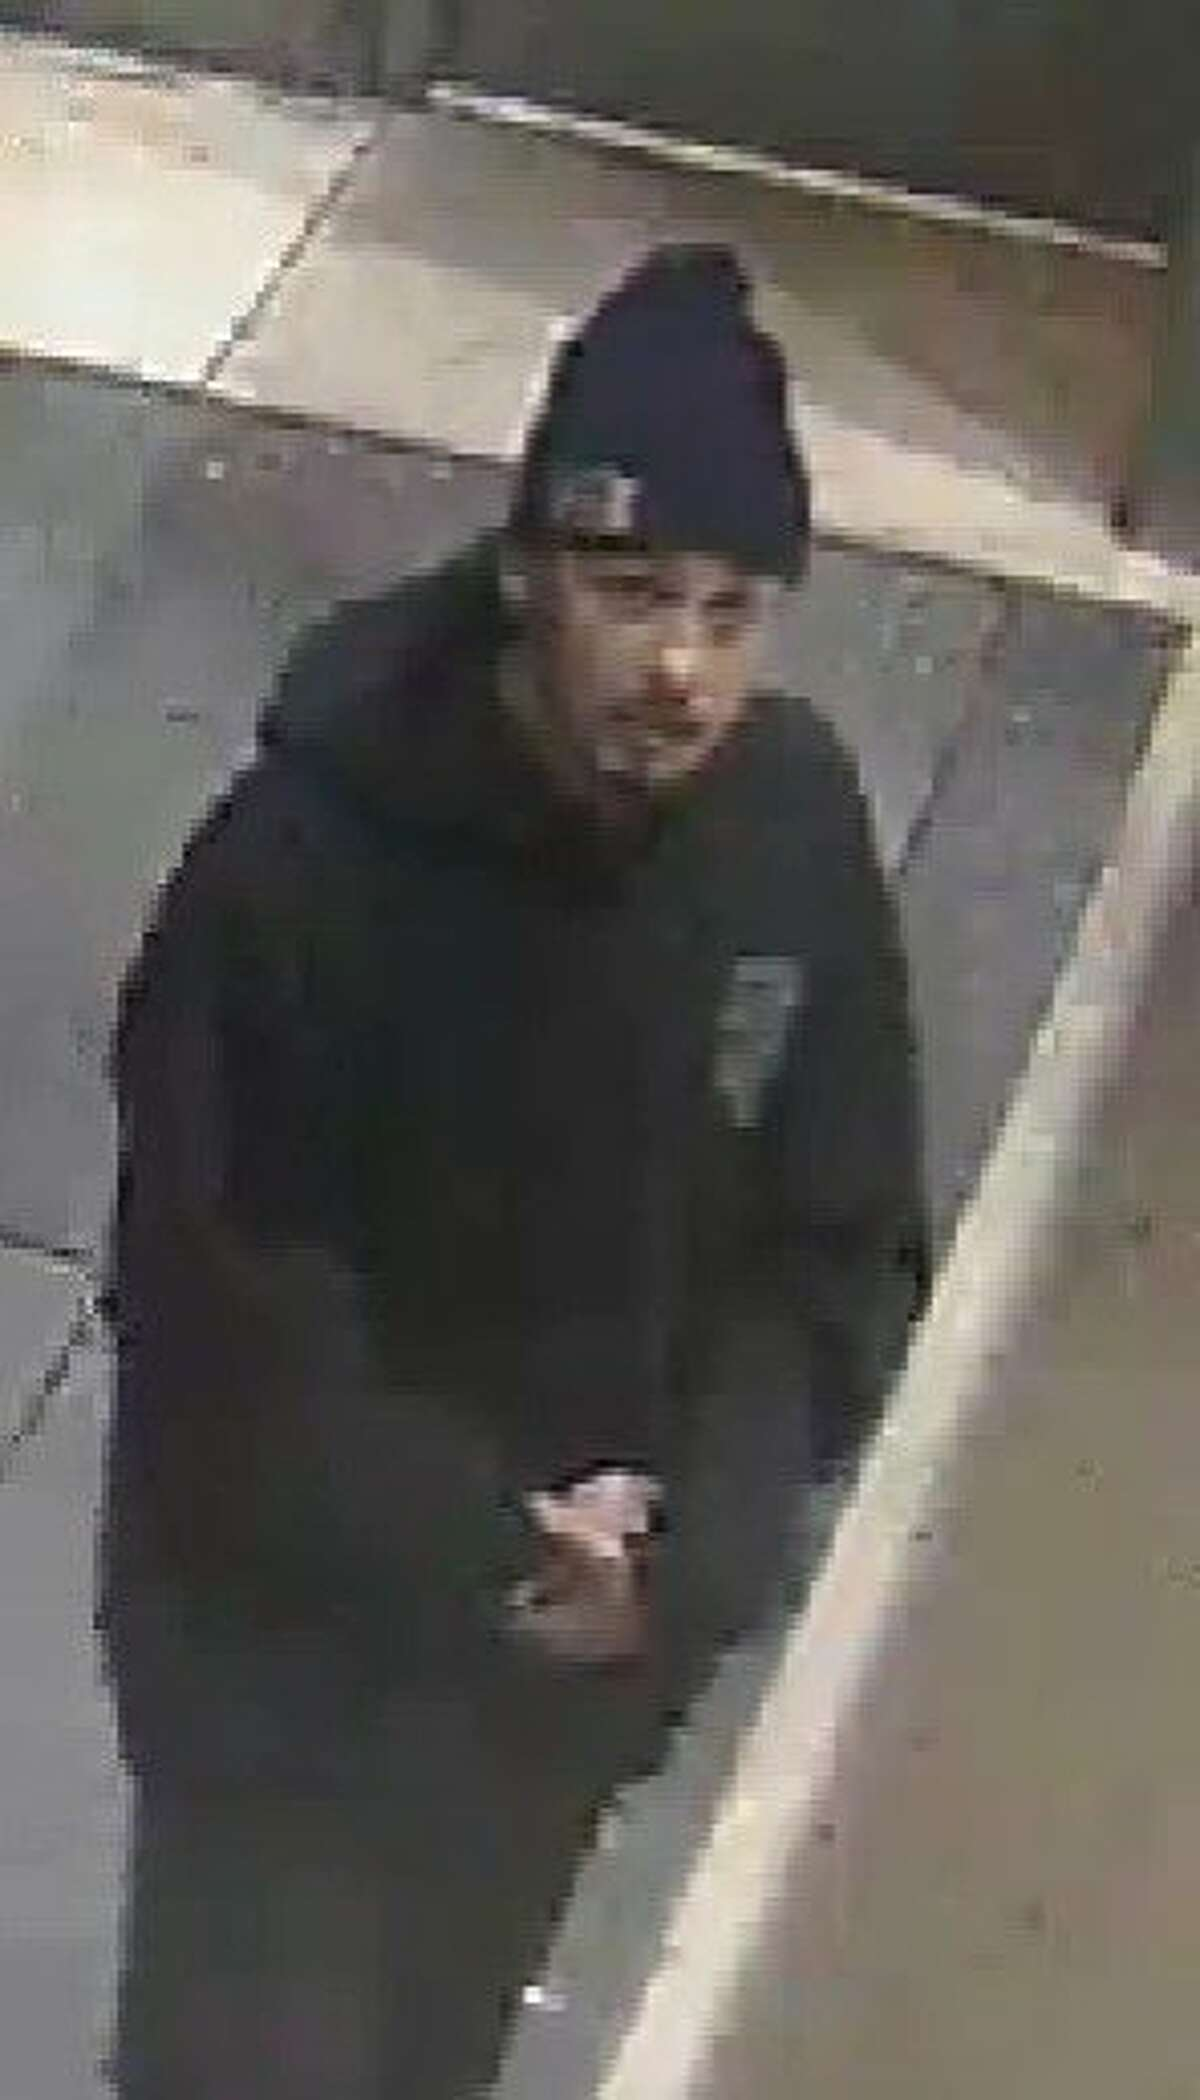 BART police are asking for the public's help in identifying a man they believed may be connected to an early morning stabbing near the Warm Springs / South Fremont BART station.